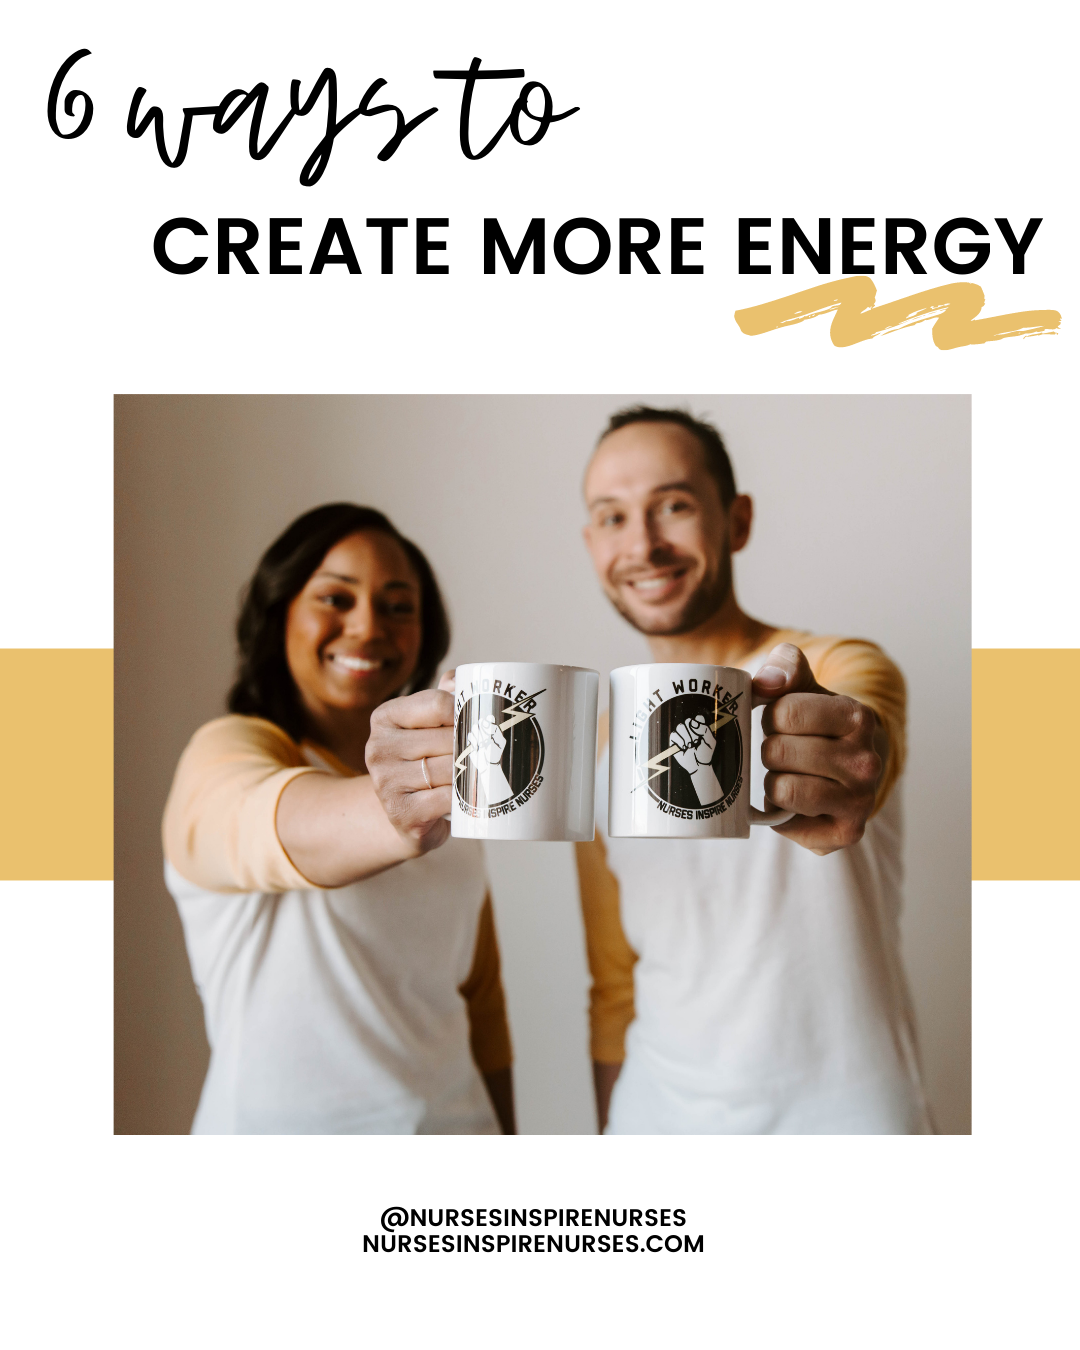 6 Ways To Create More Energy